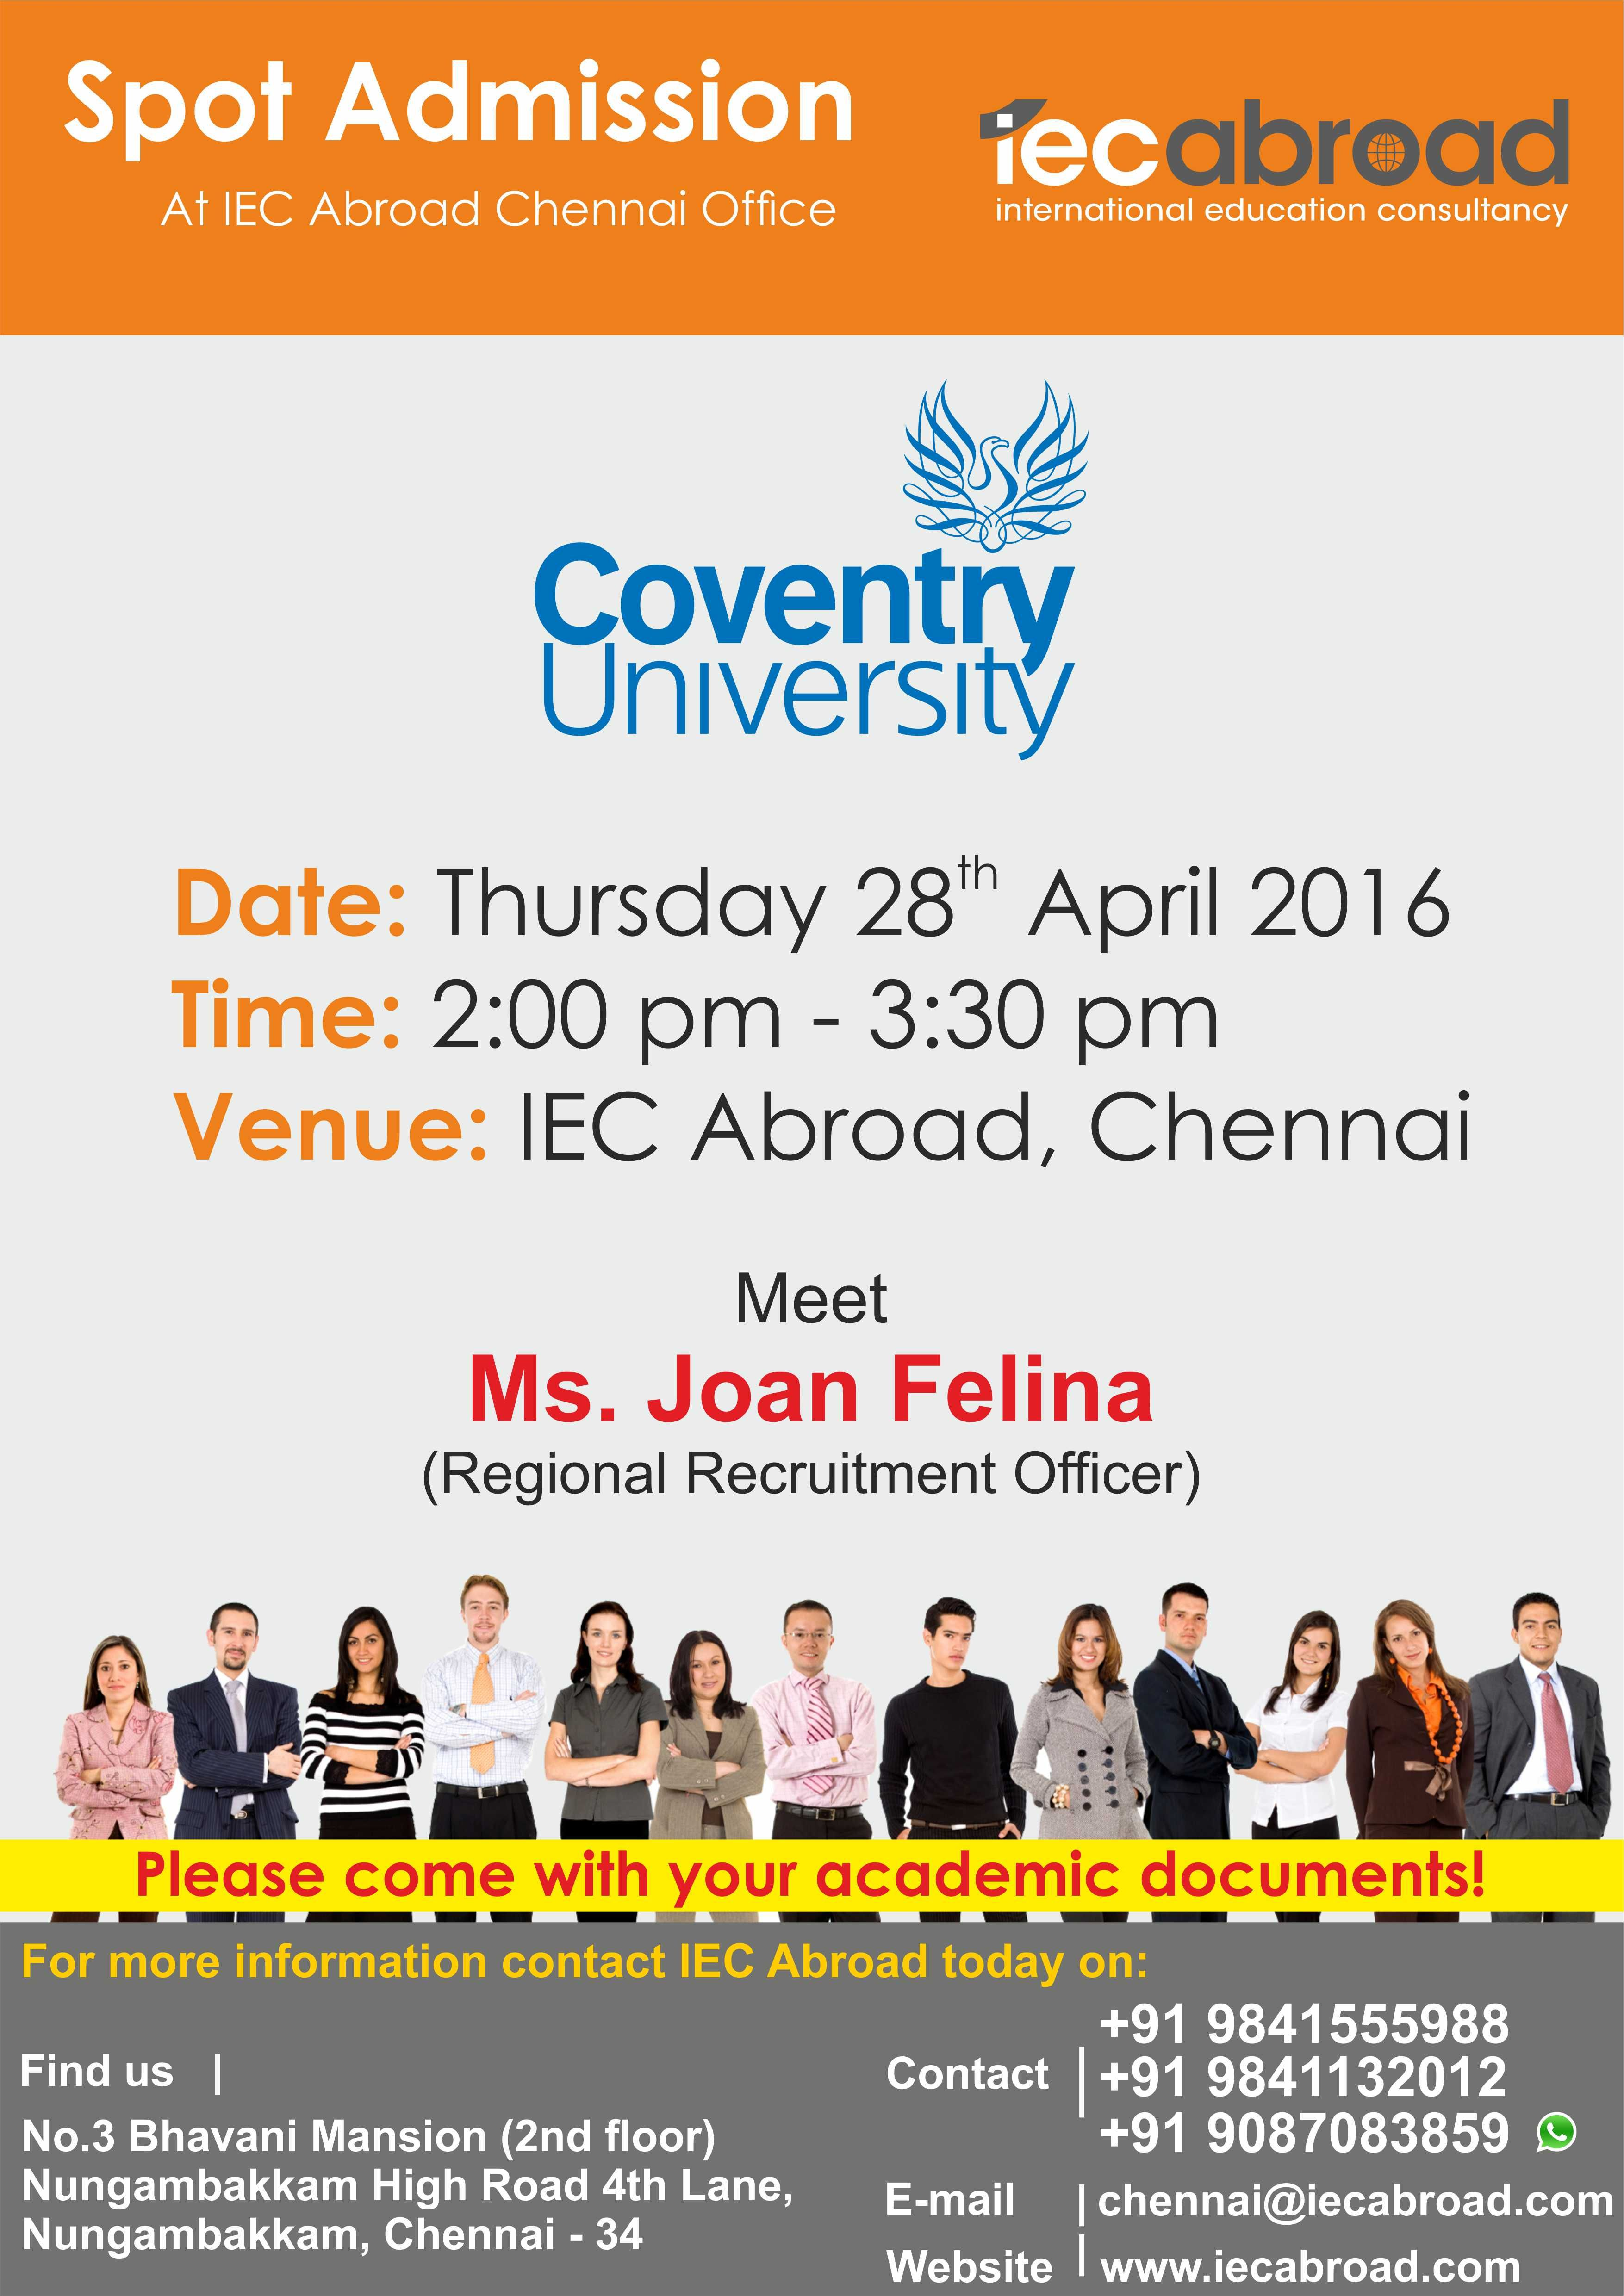 Spot Admission Coventry University ! Coventry university